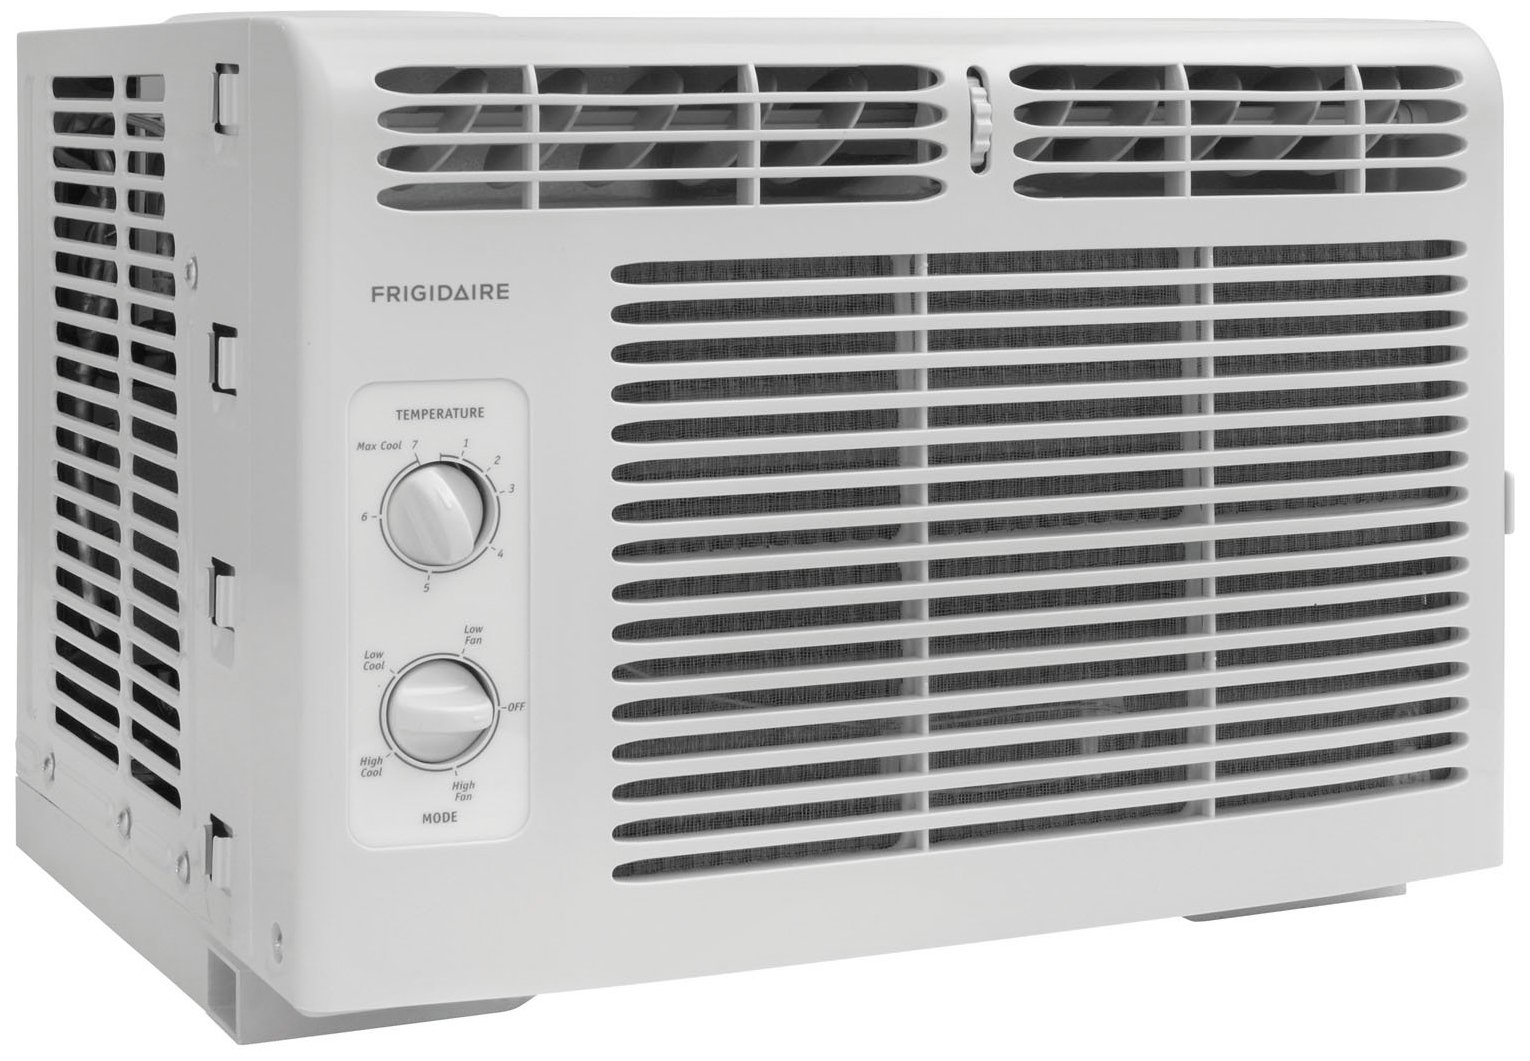 Frigidaire FFRA0511R1E 5, 000 BTU 115V Window-Mounted Mini-Compact Air Conditioner with Mechanical Controls 1 5,000 BTU mini-compact air conditioner for window-mounted installation uses standard 115V electrical outlet (Window mounting kit included) Quickly cools a room up to 150 sq. ft. with dehumidification up to 1.1 pints per hour Mechanical rotary controls, 2 cool speeds, 2 fan speeds, and 2-way air direction.Accommodates windows with a minimum height of 13 inches and width of 23 inches to 36 inches